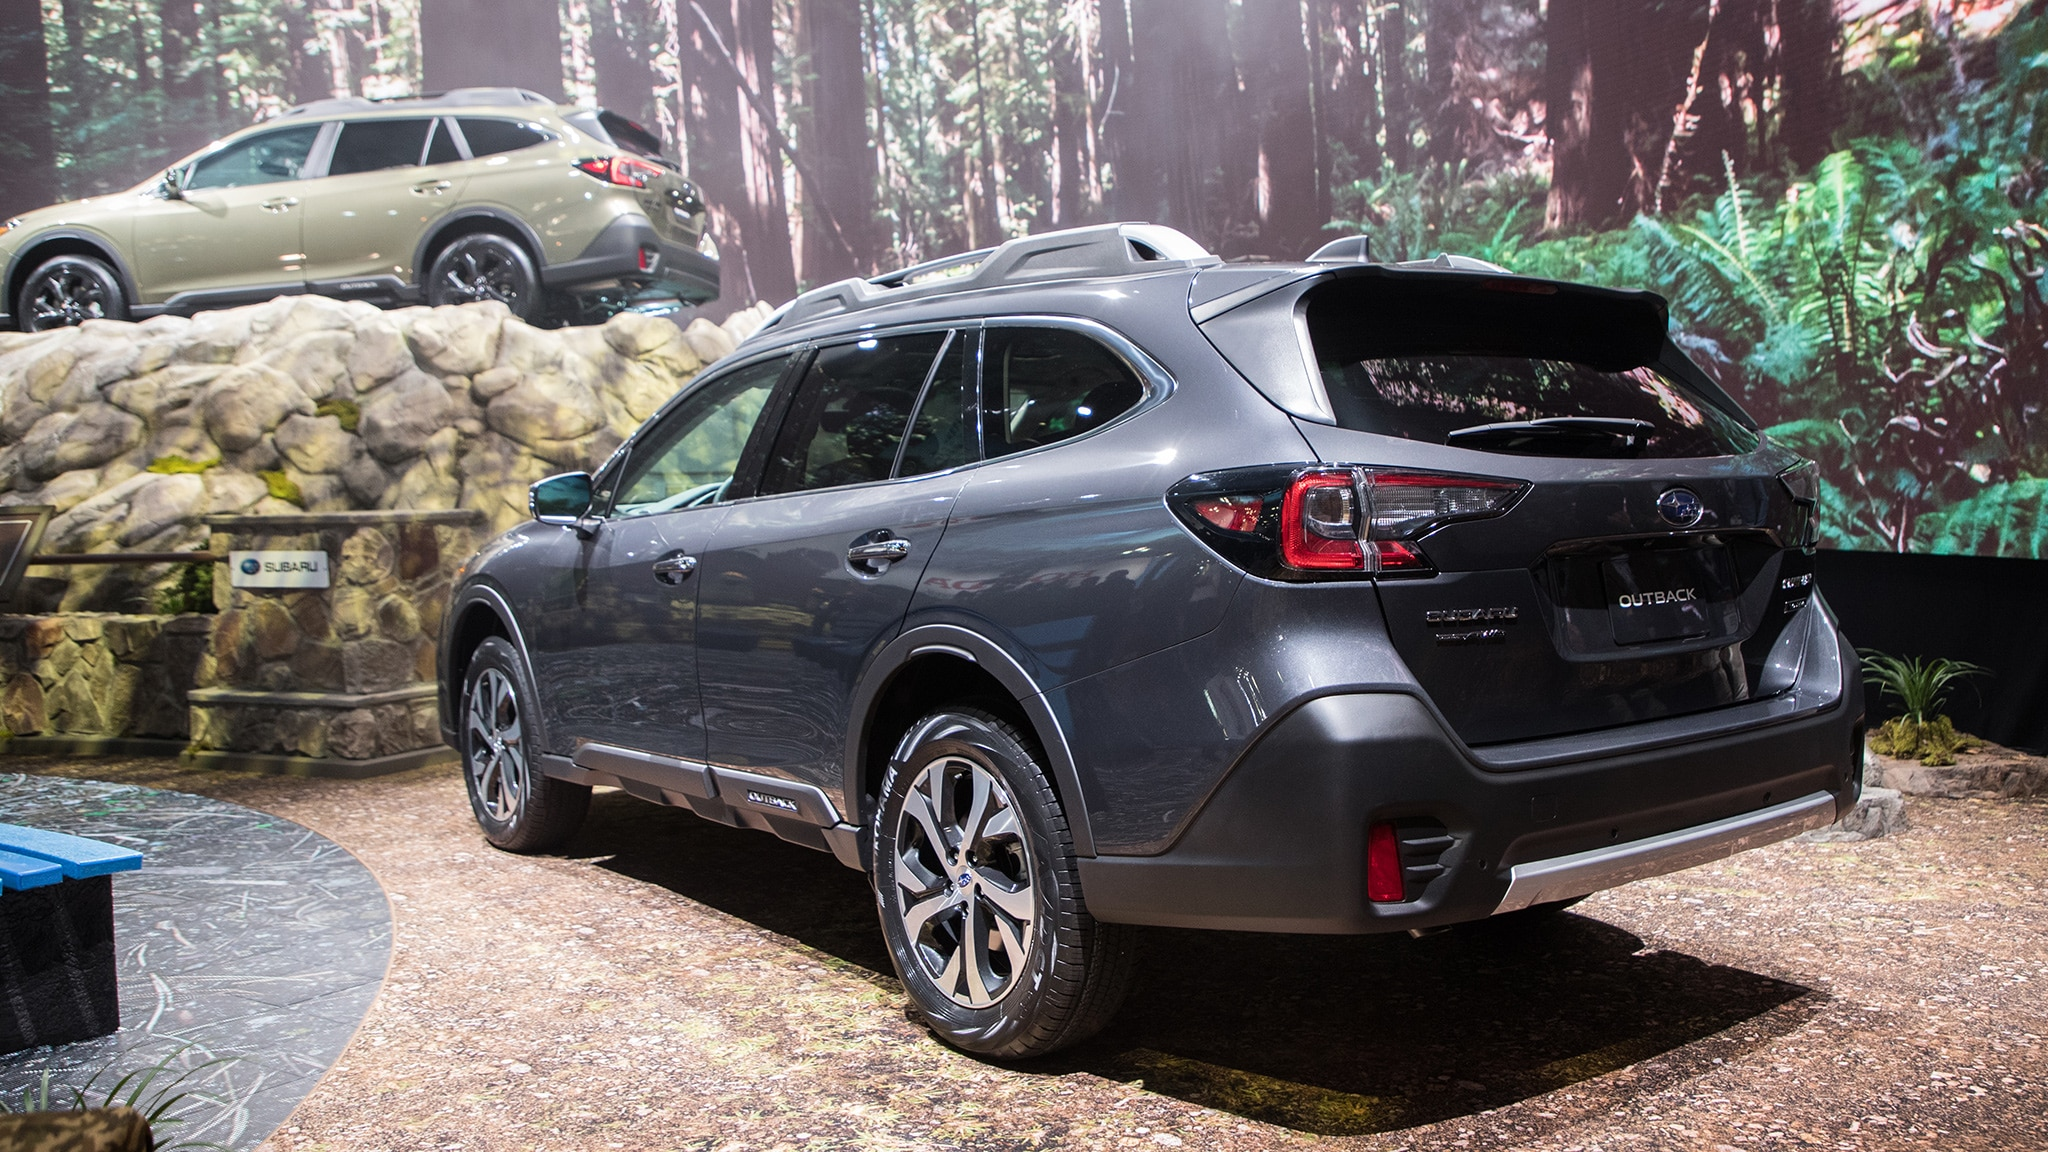 96 The 2020 Subaru Outback Ground Clearance Research New with 2020 Subaru Outback Ground Clearance